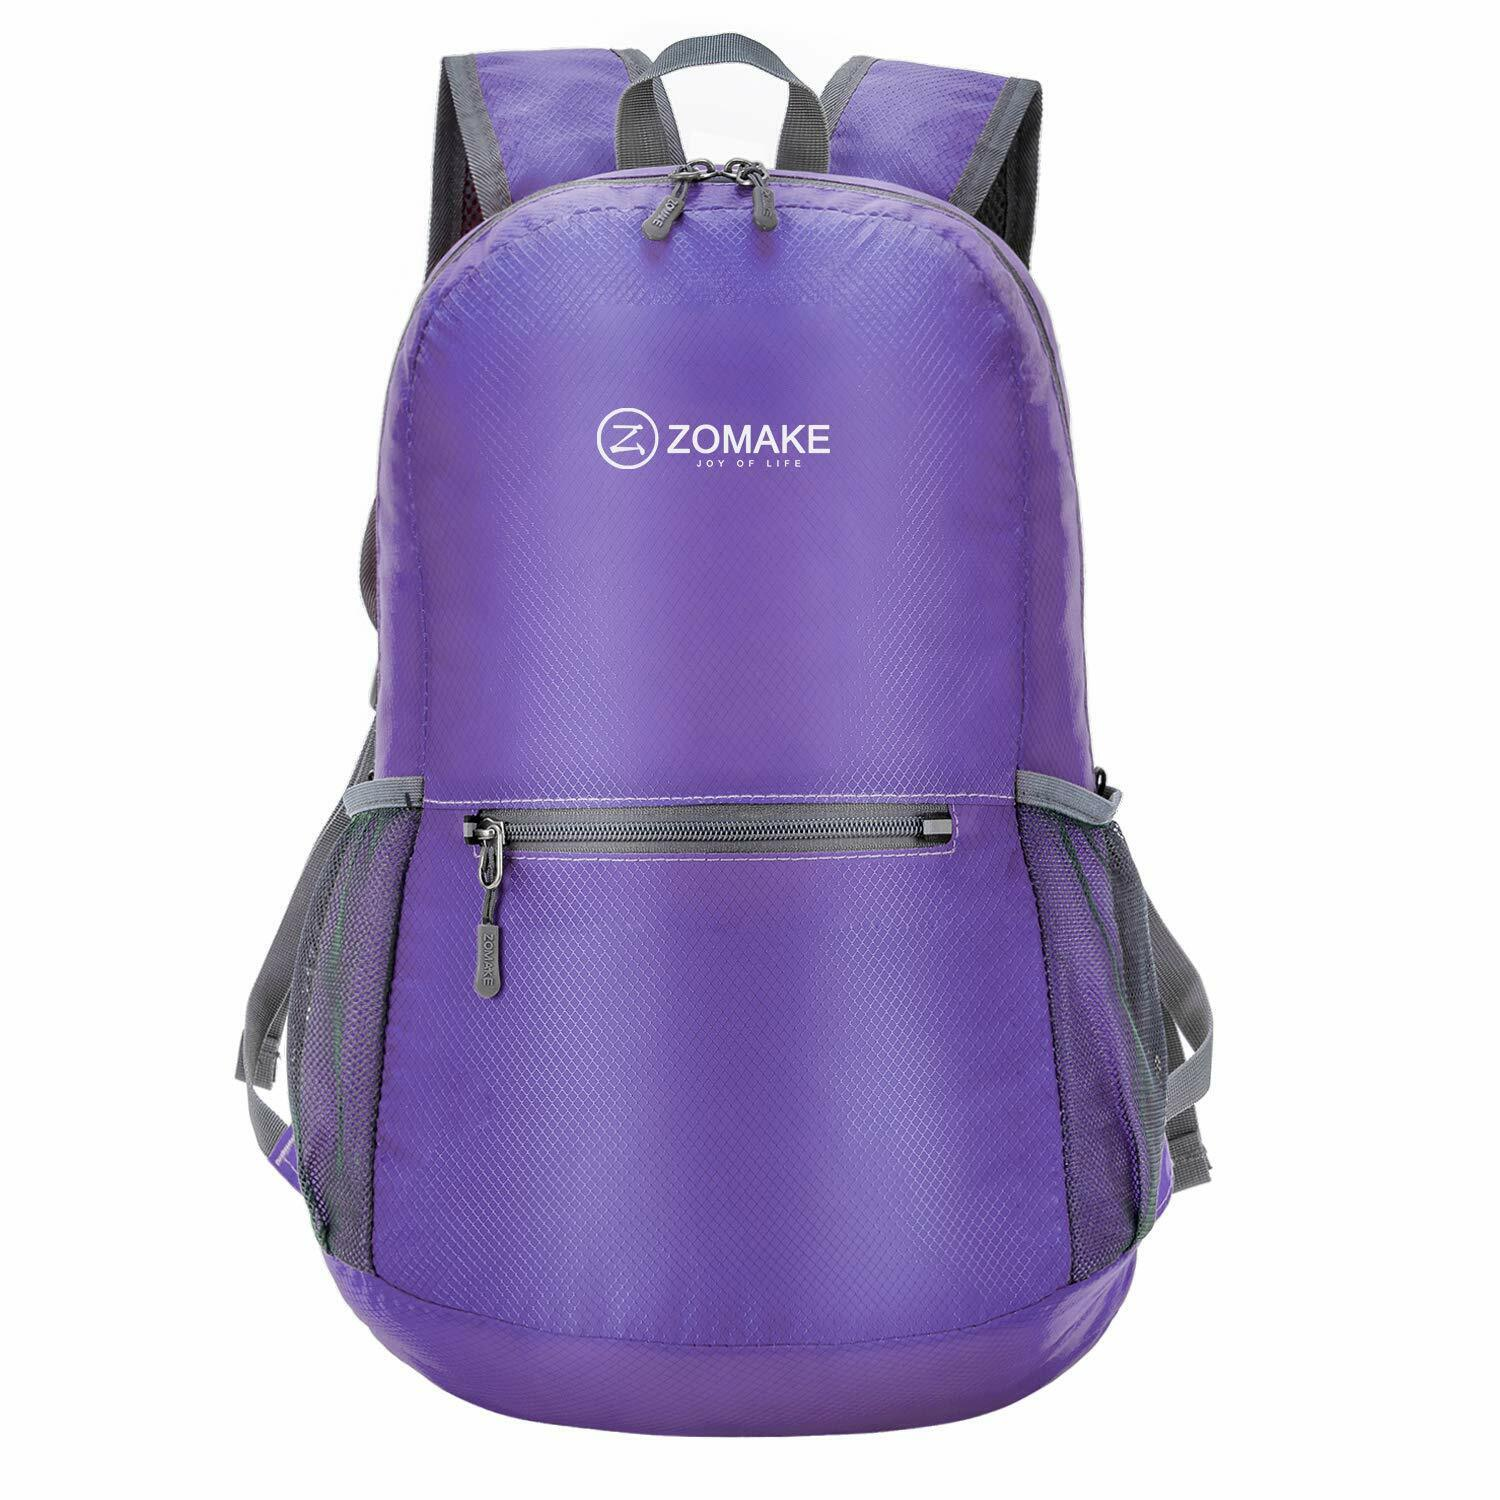 ZOMAKE Purple Ultra Lightweight Packable Backpack Water Resistant Hiking Daypack Camping & Hiking